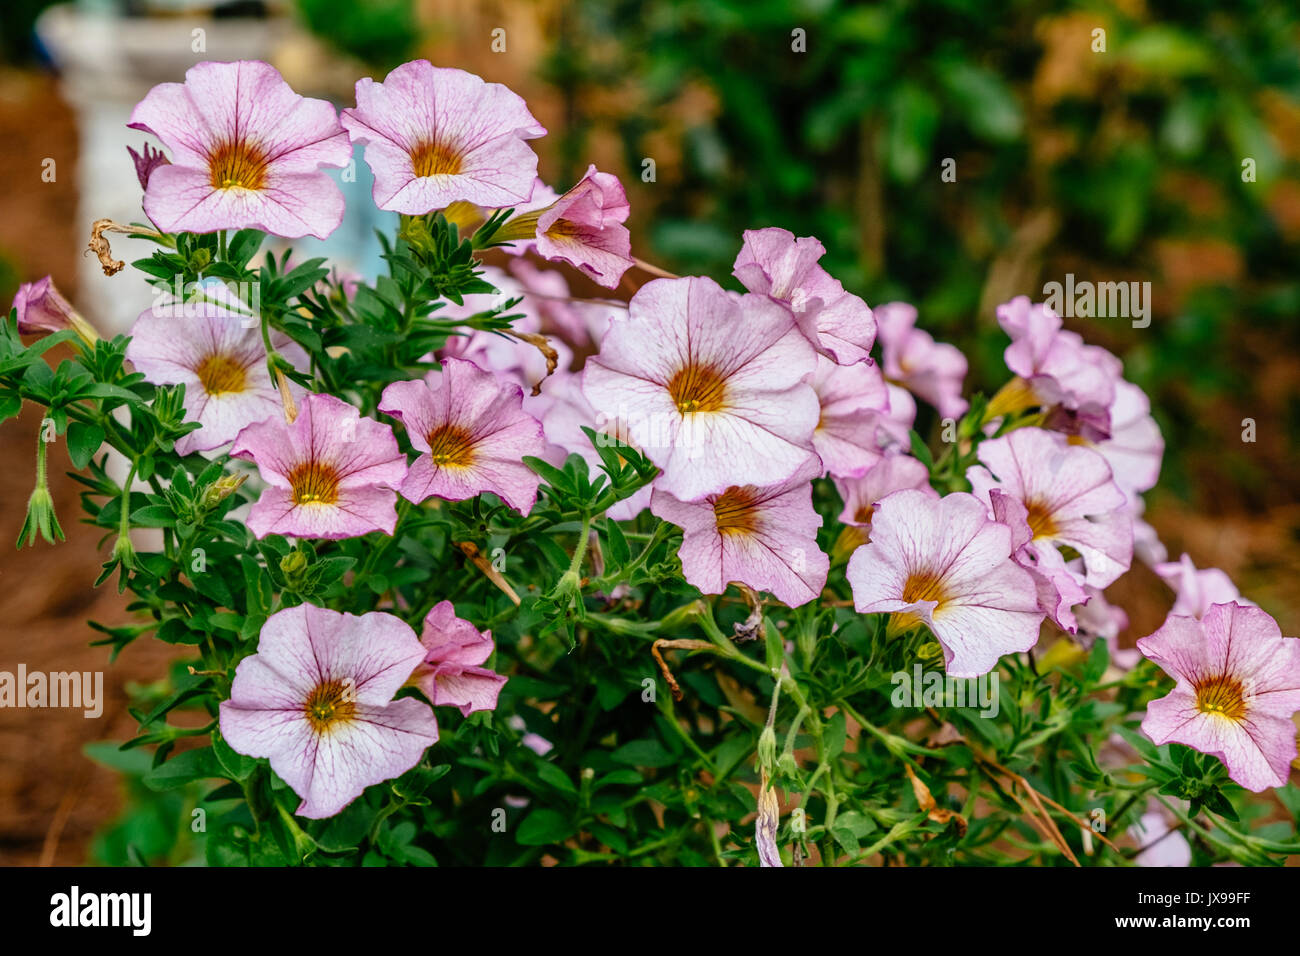 Purple variegated Grandiflora Petunia flowers on display in a summer garden setting. - Stock Image